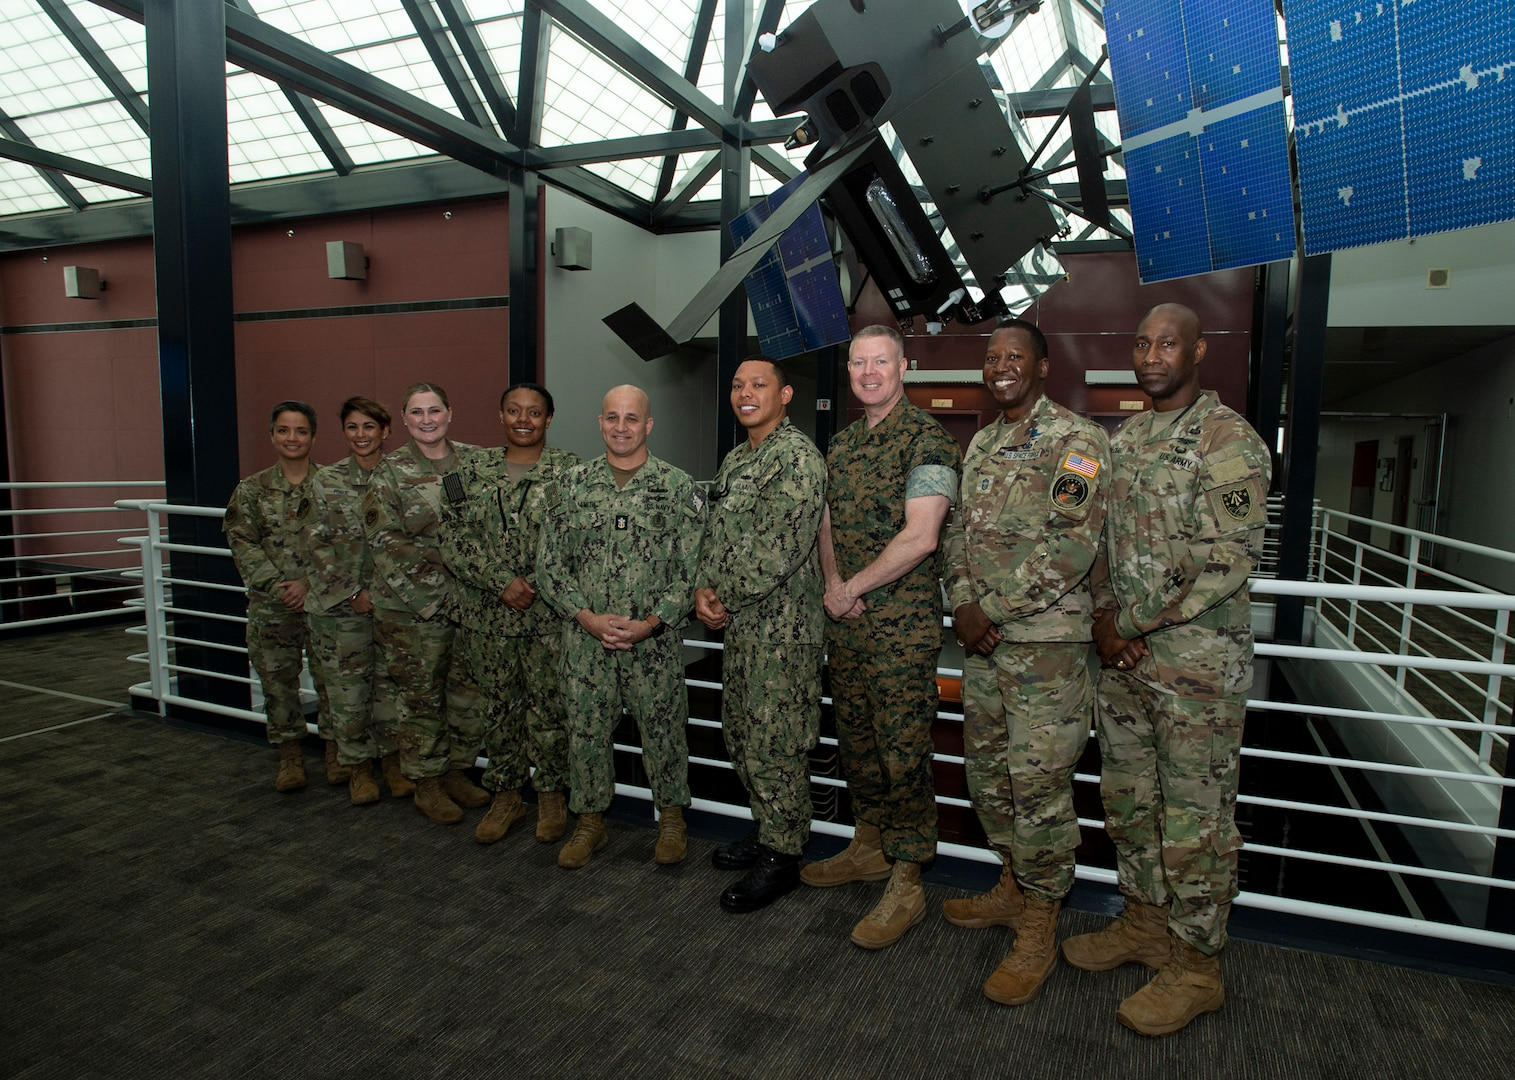 Military officials pose for a photo.